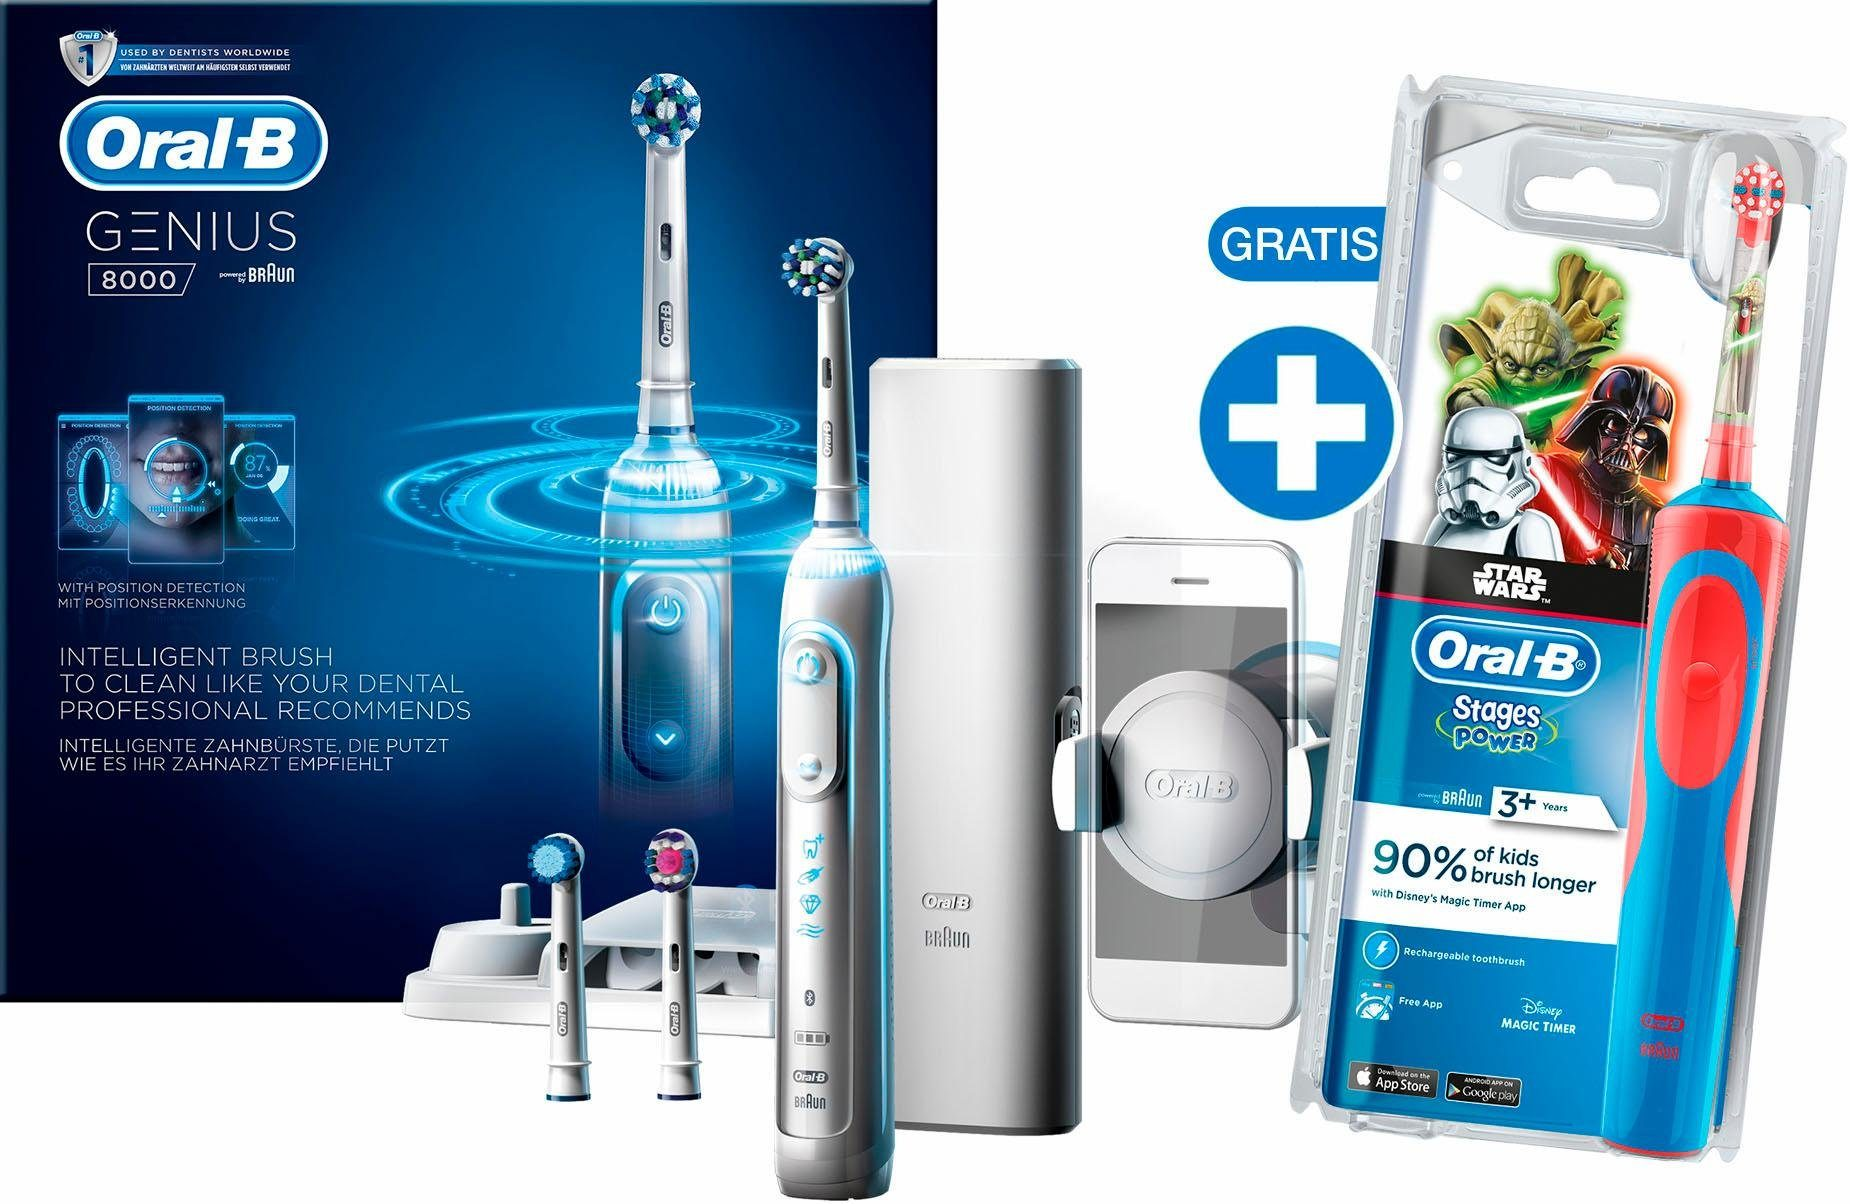 Oral-B Elektrische Zahnbürste Genius 8000, inklusive gratis Stages Power Kids Star Wars Zahnbürste